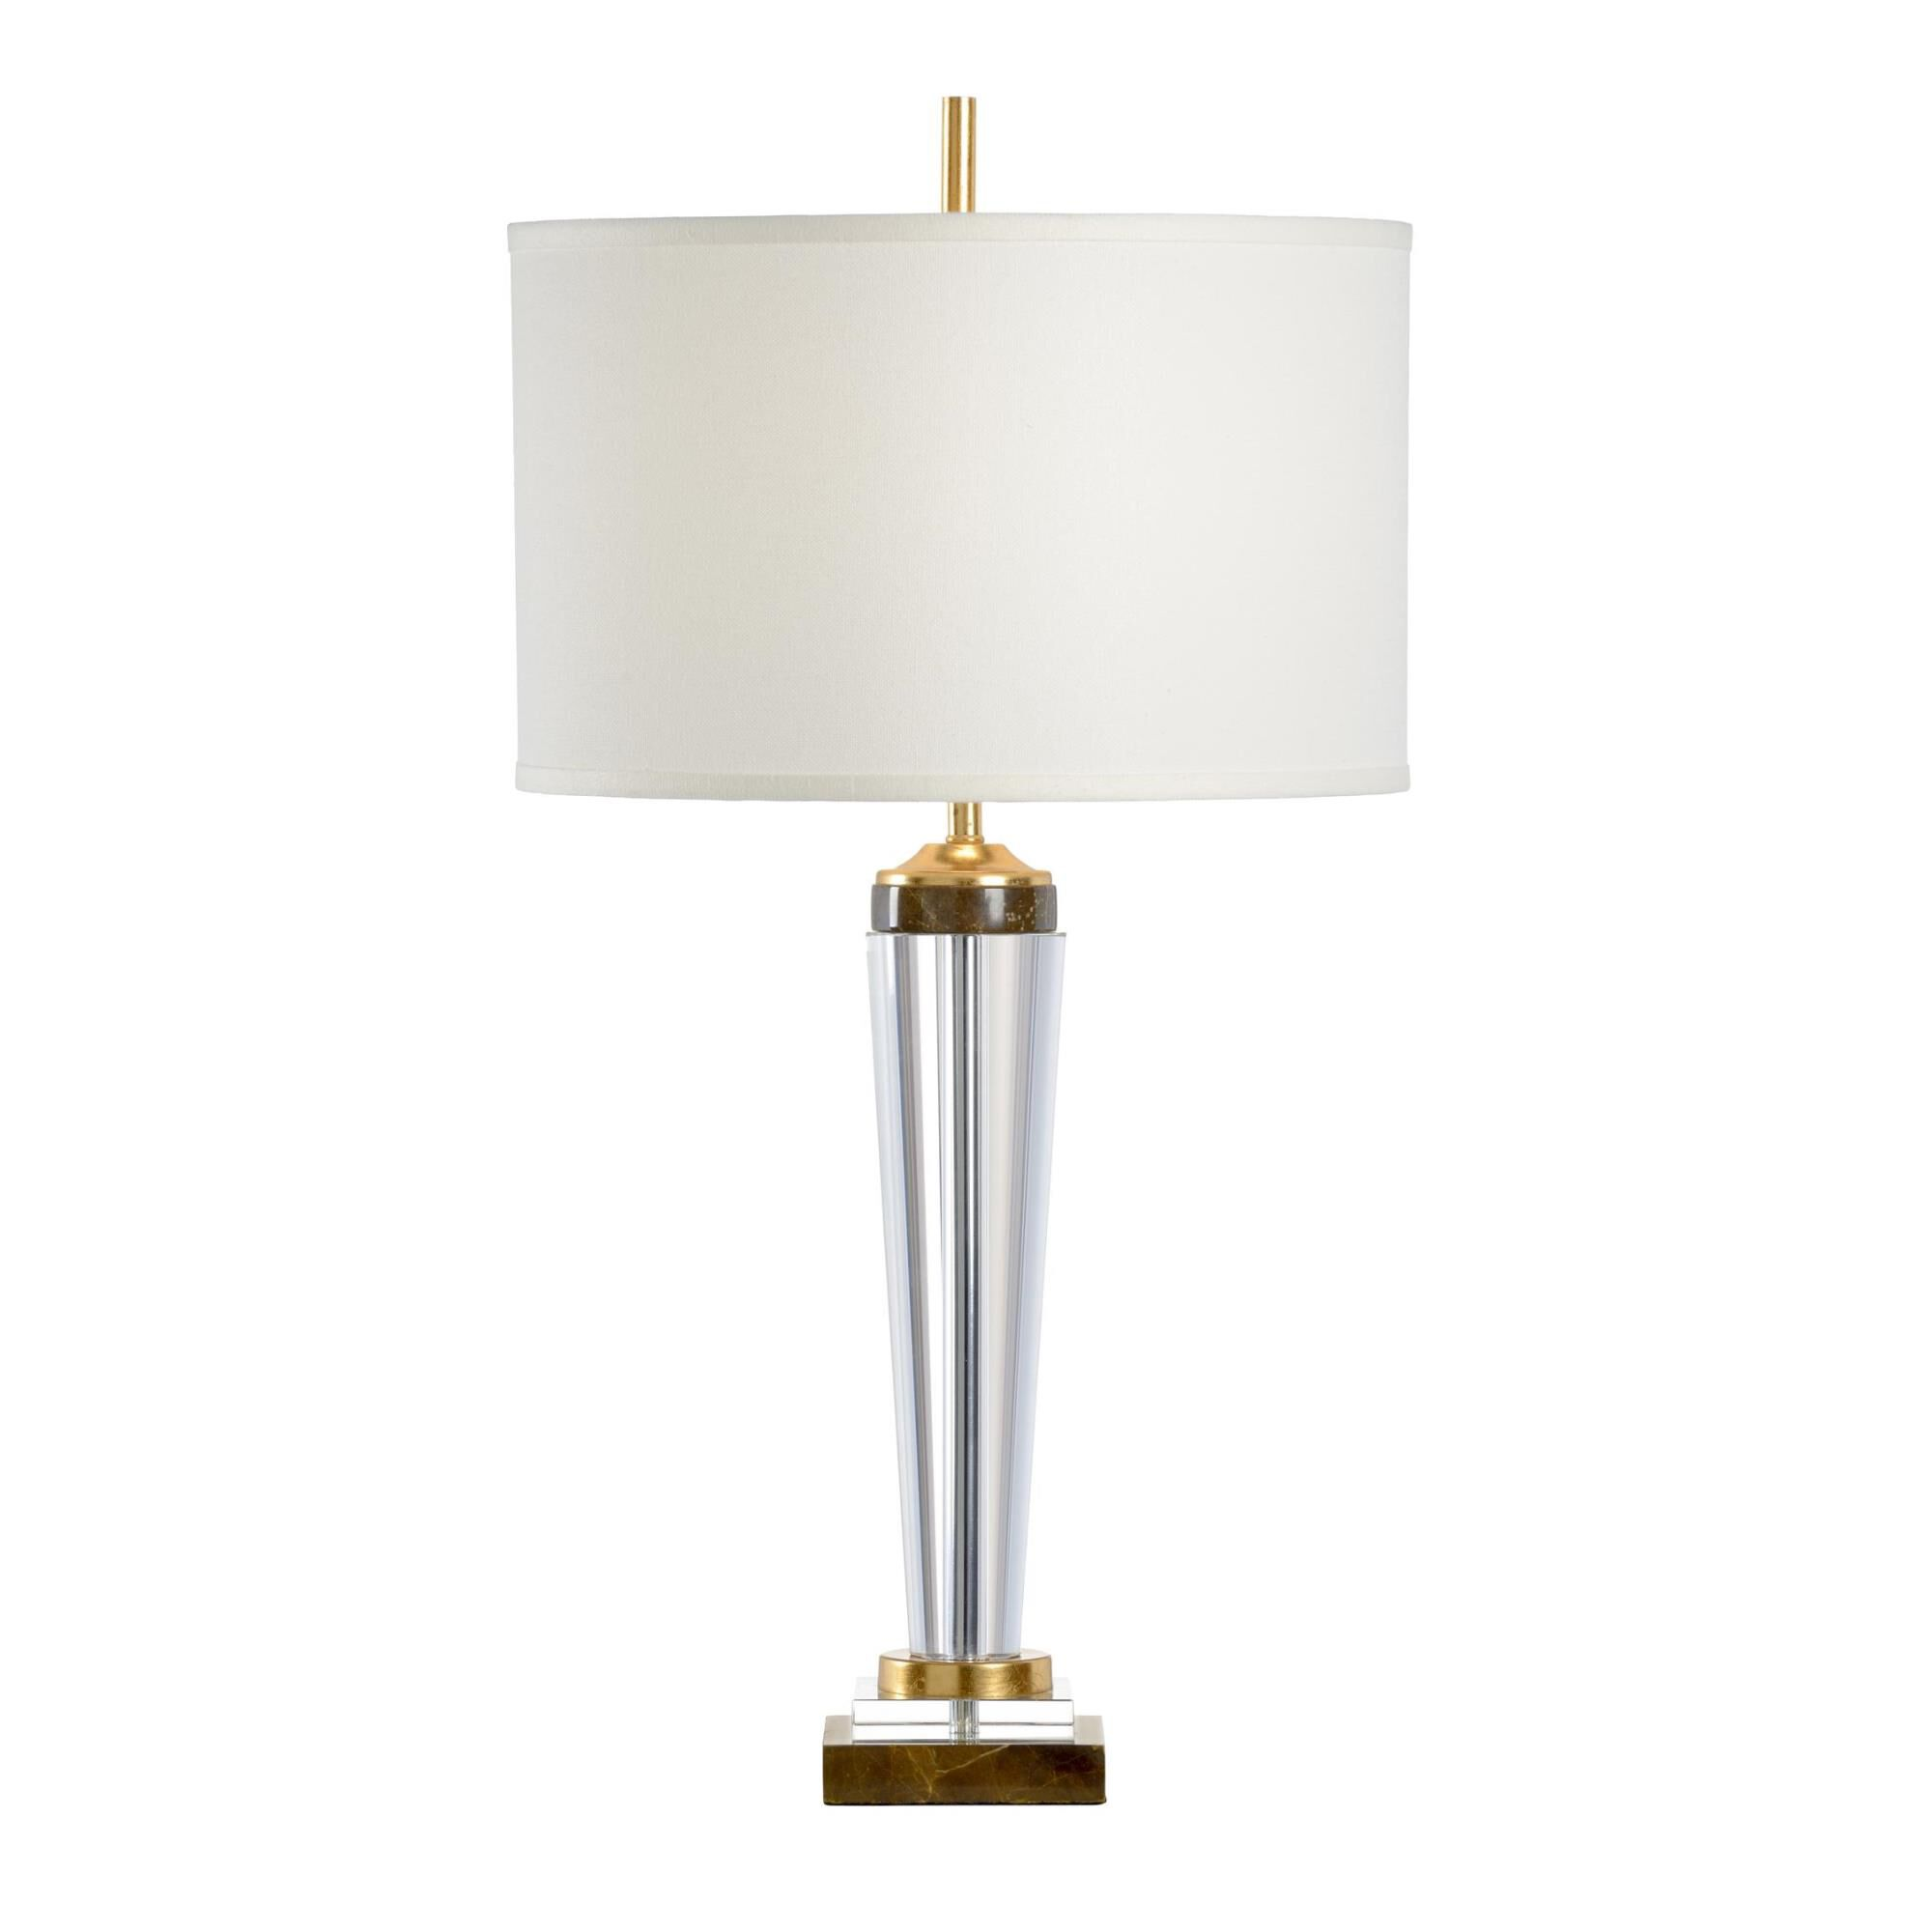 Chelsea House Jefferson Table Lamp Jefferson - 69158 - Traditional Table Lamp